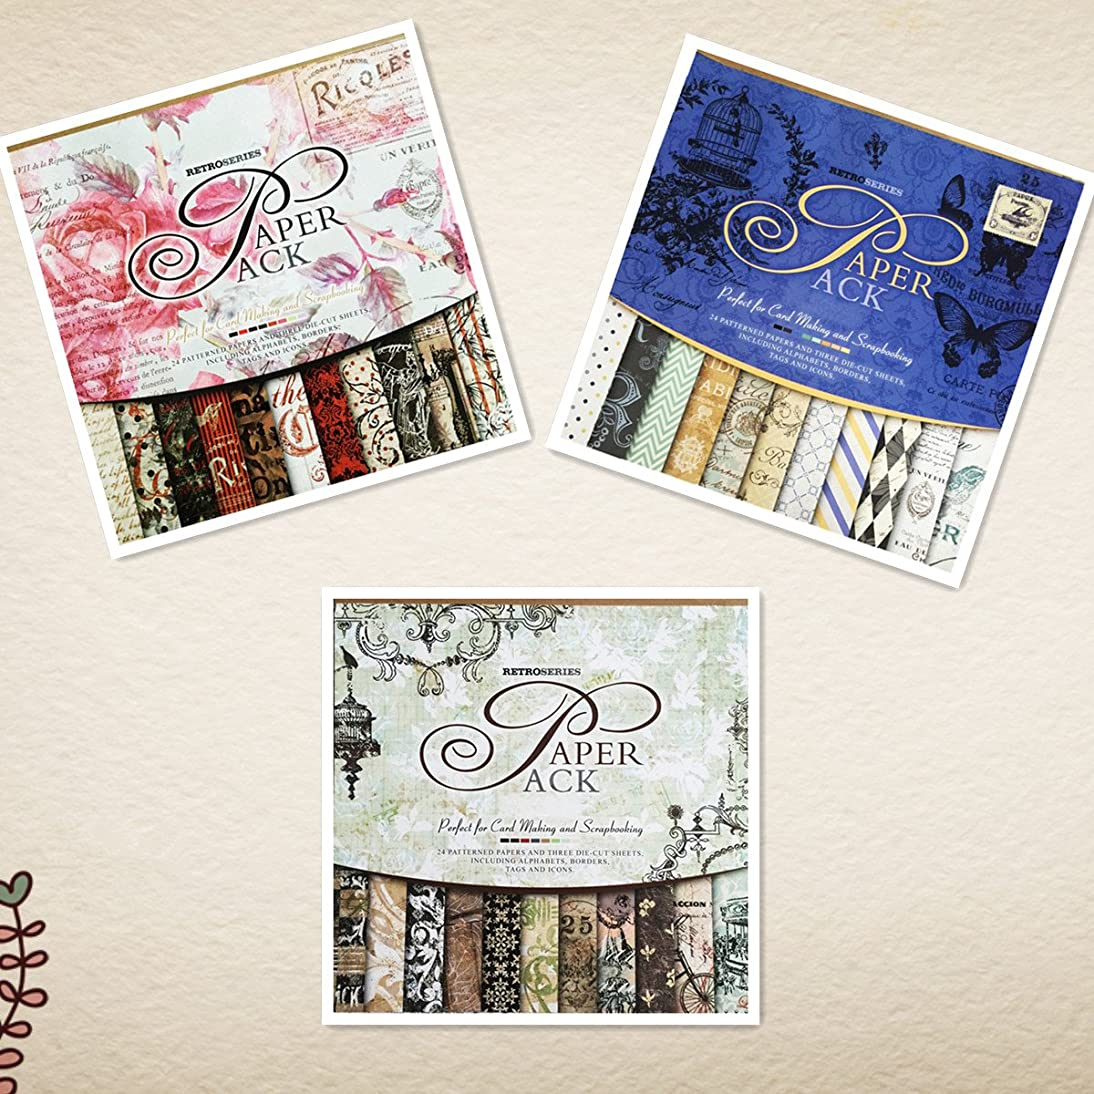 S&B Scrapbook Paper Book Pad 12 x 12-inches Classic Decoupage Paper Supplies, 3-Pack(Blue, Rose and Gray/Black)